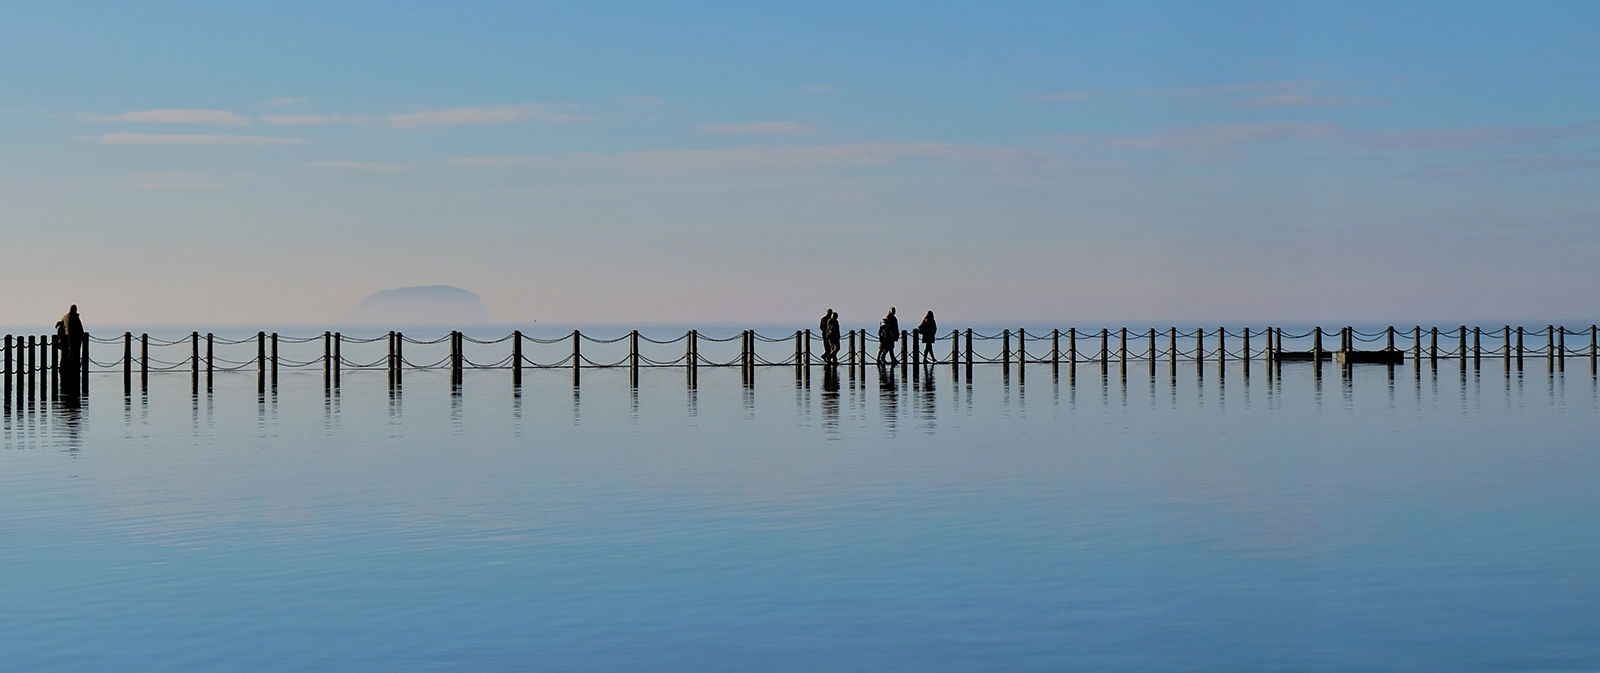 Colour Highly Commended: Silhouettes on the Causeway by Sheila Kibble